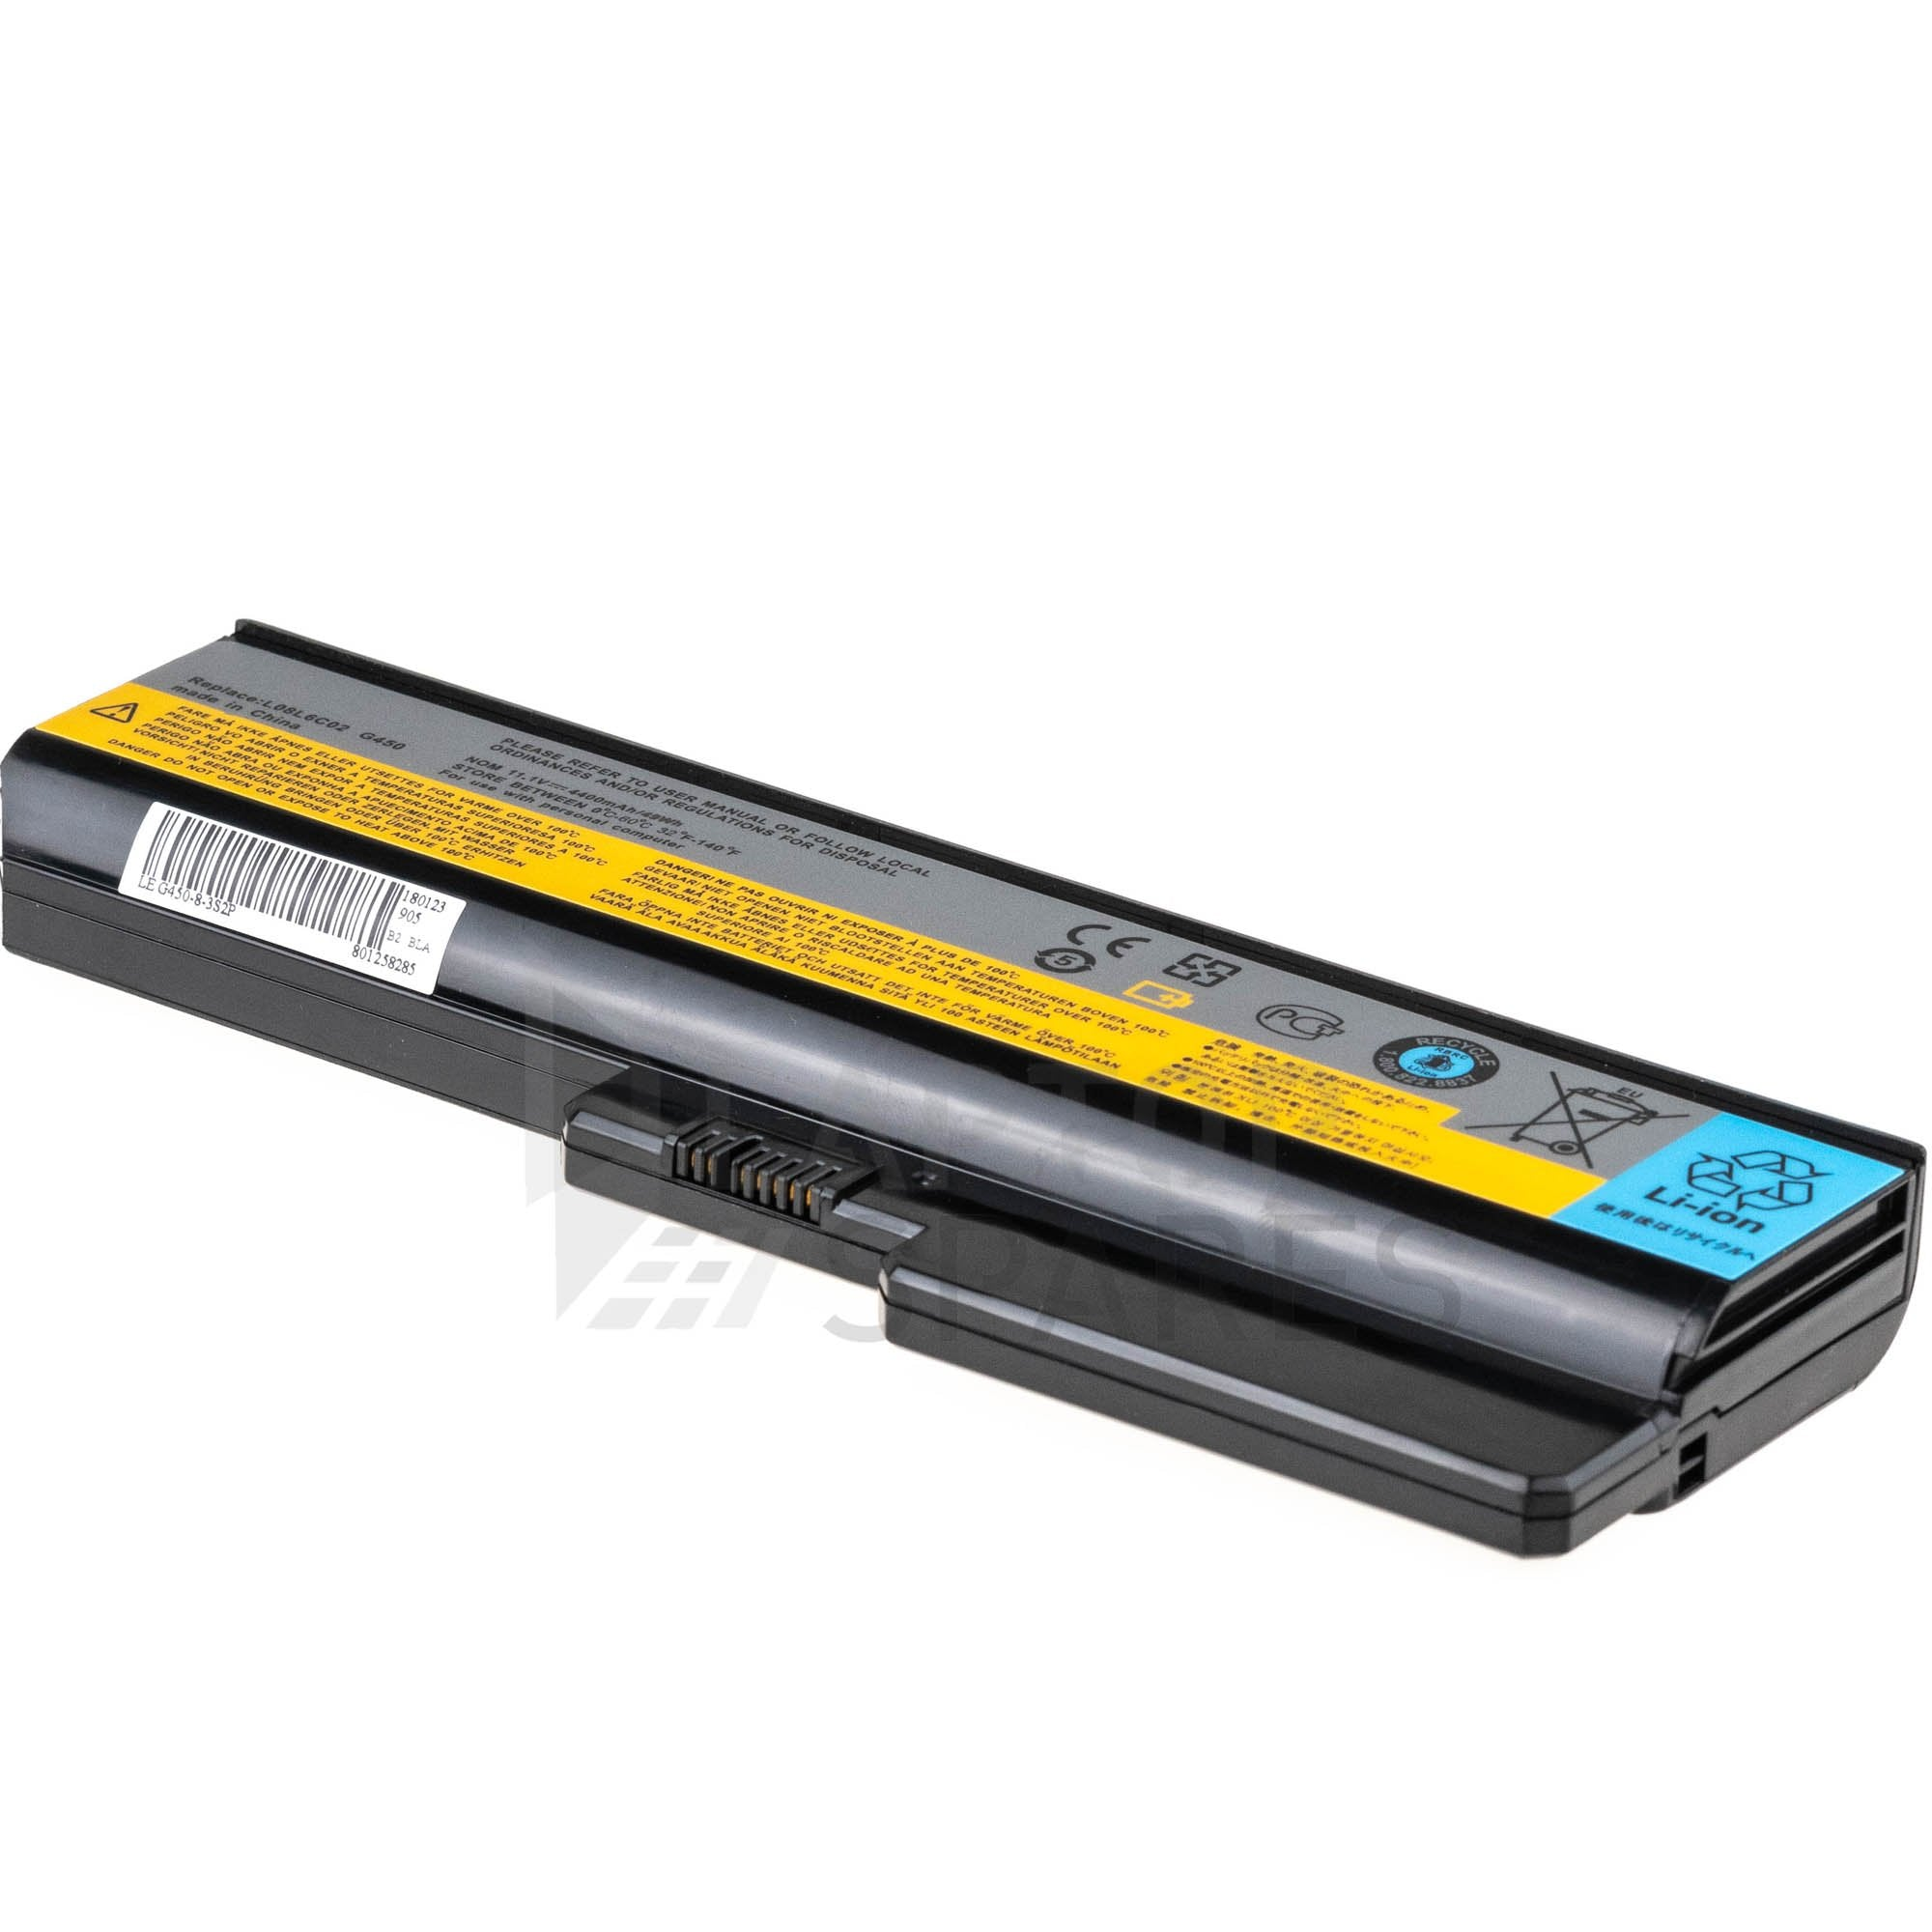 Lenovo 51J0226 ASM 42T4586 4400mAh 6 Cell Battery